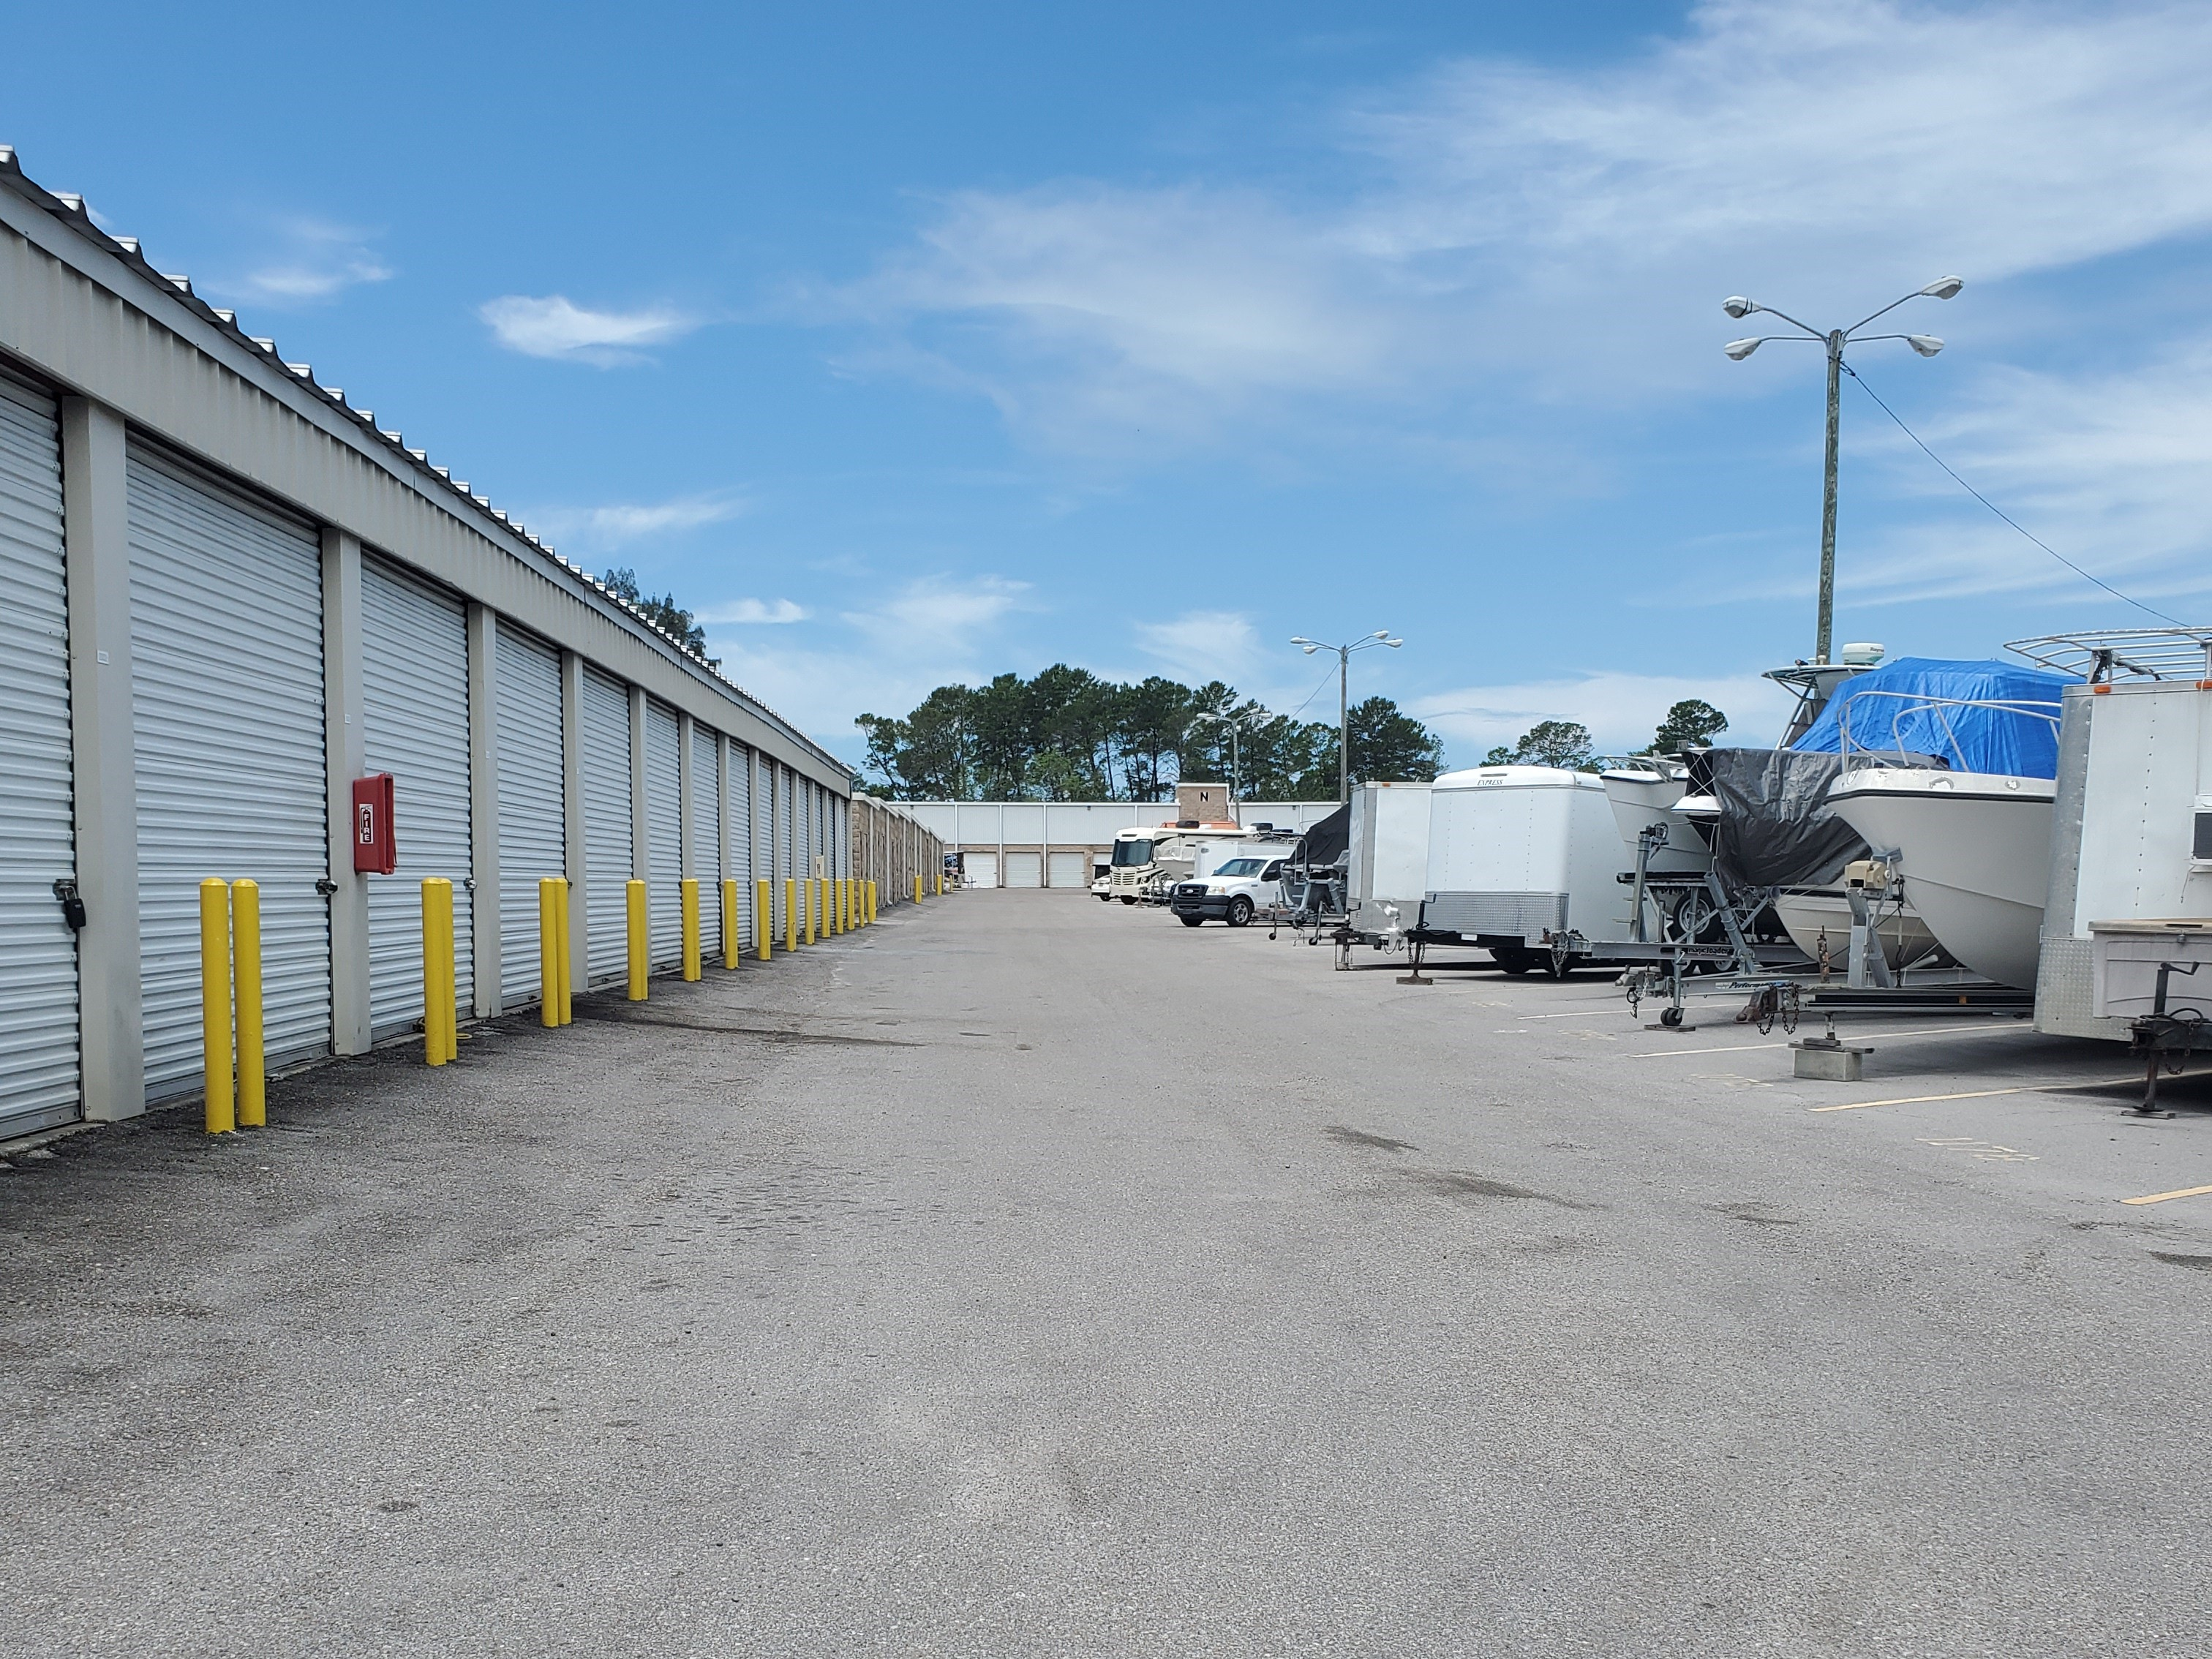 Row of storage spaces and parked RVs